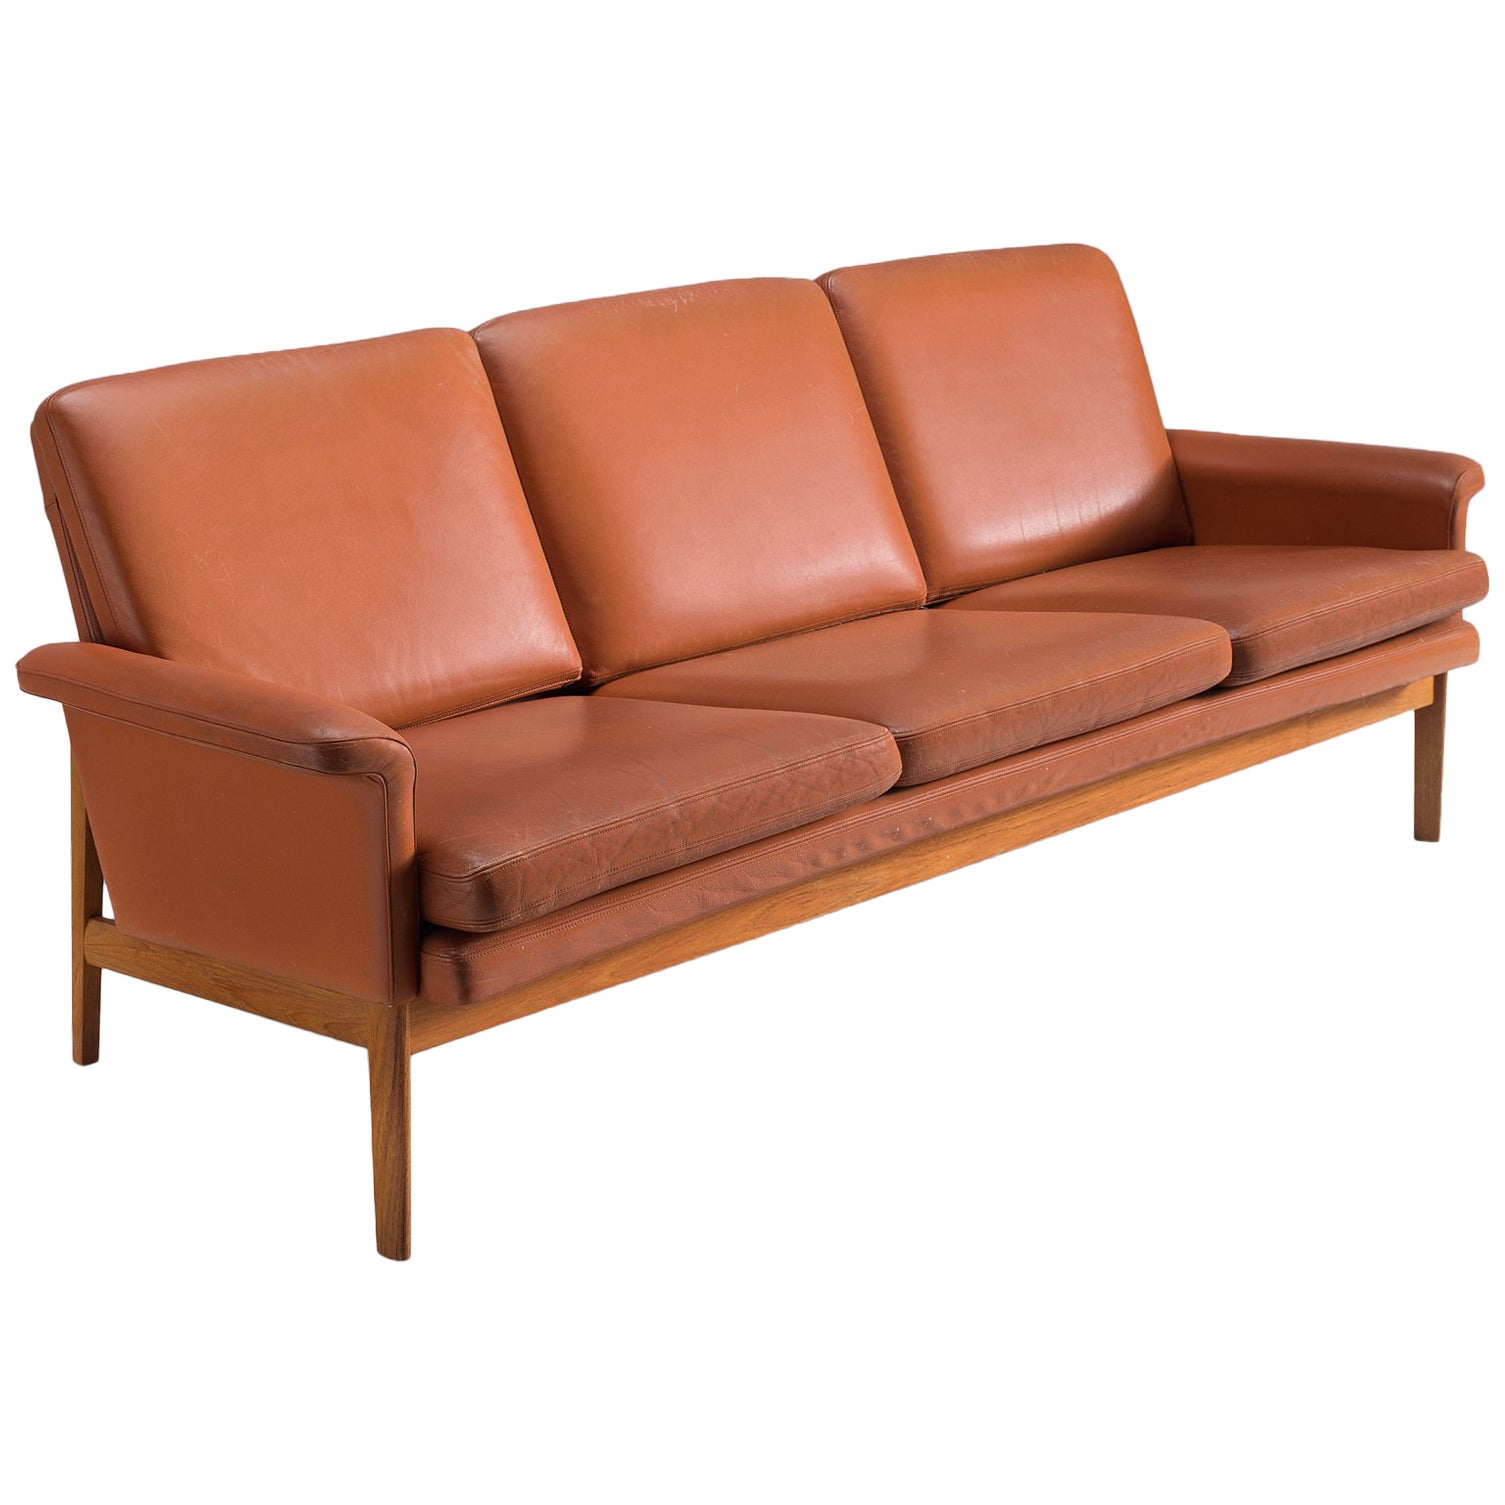 Amazing Finn Juhl Jupiter Sofa In Cognac Leather And Teak For Sale Alphanode Cool Chair Designs And Ideas Alphanodeonline